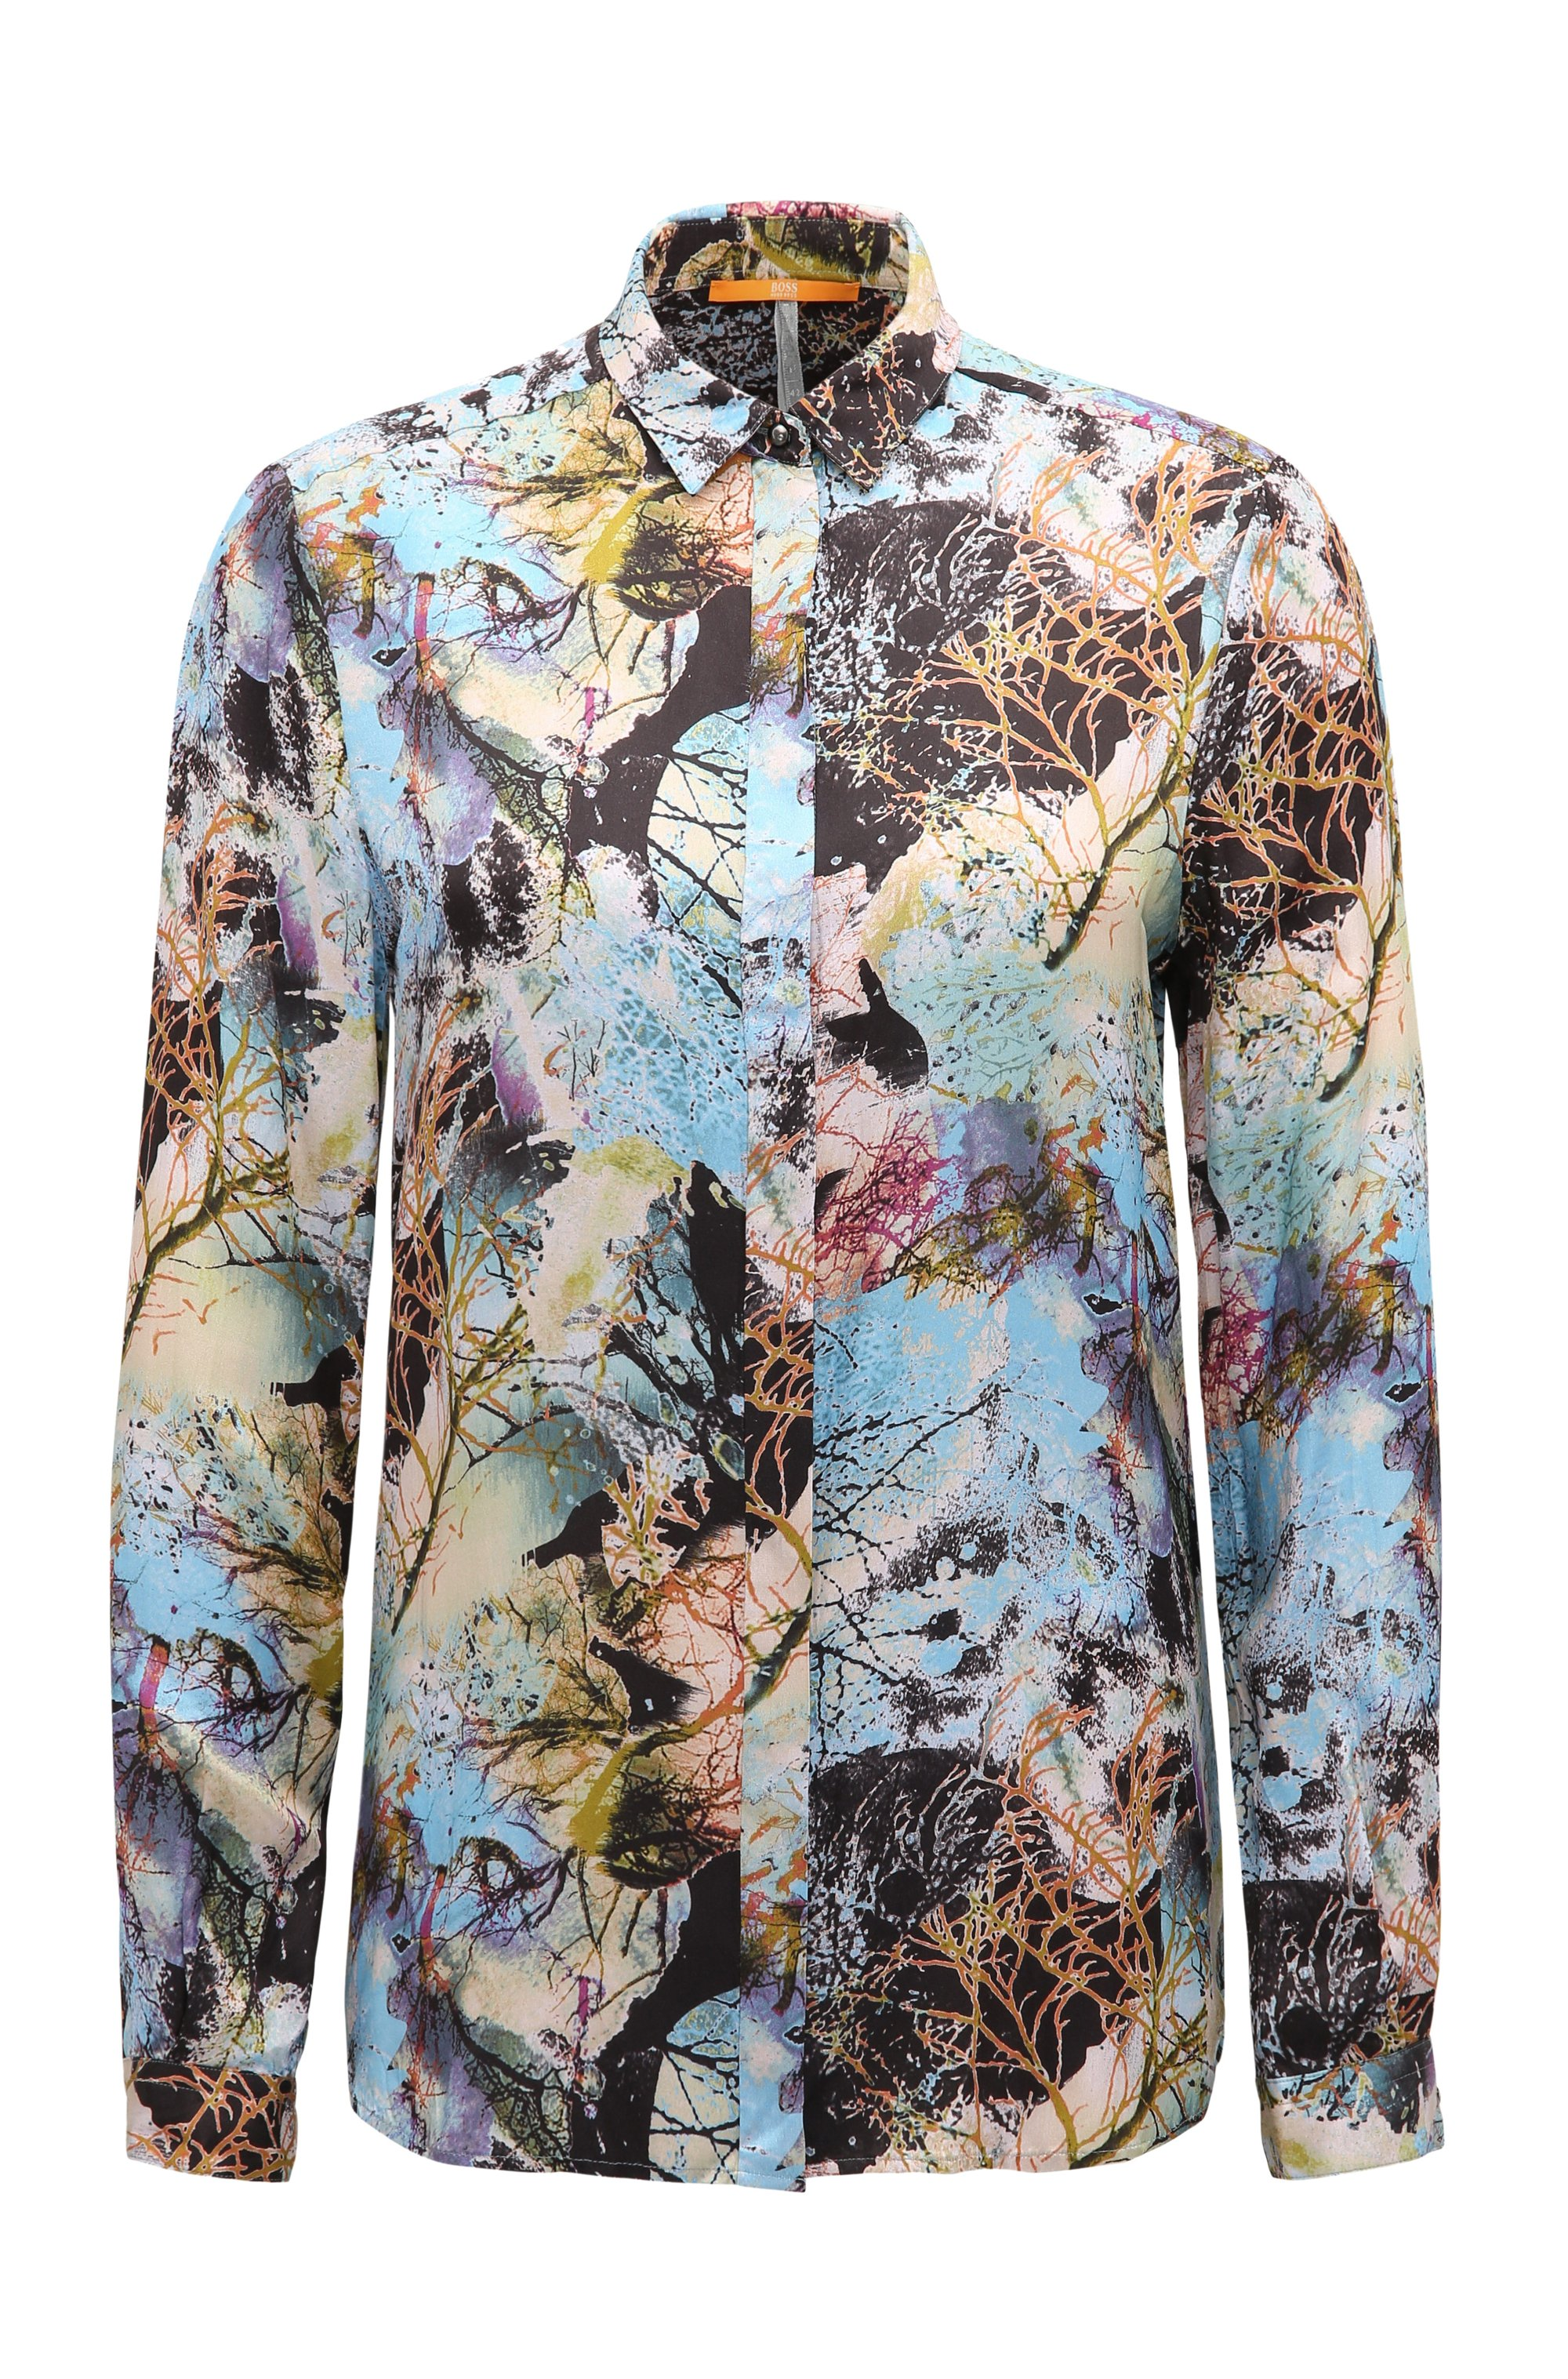 Regular-fit blouse in a nature-inspired print, Patterned